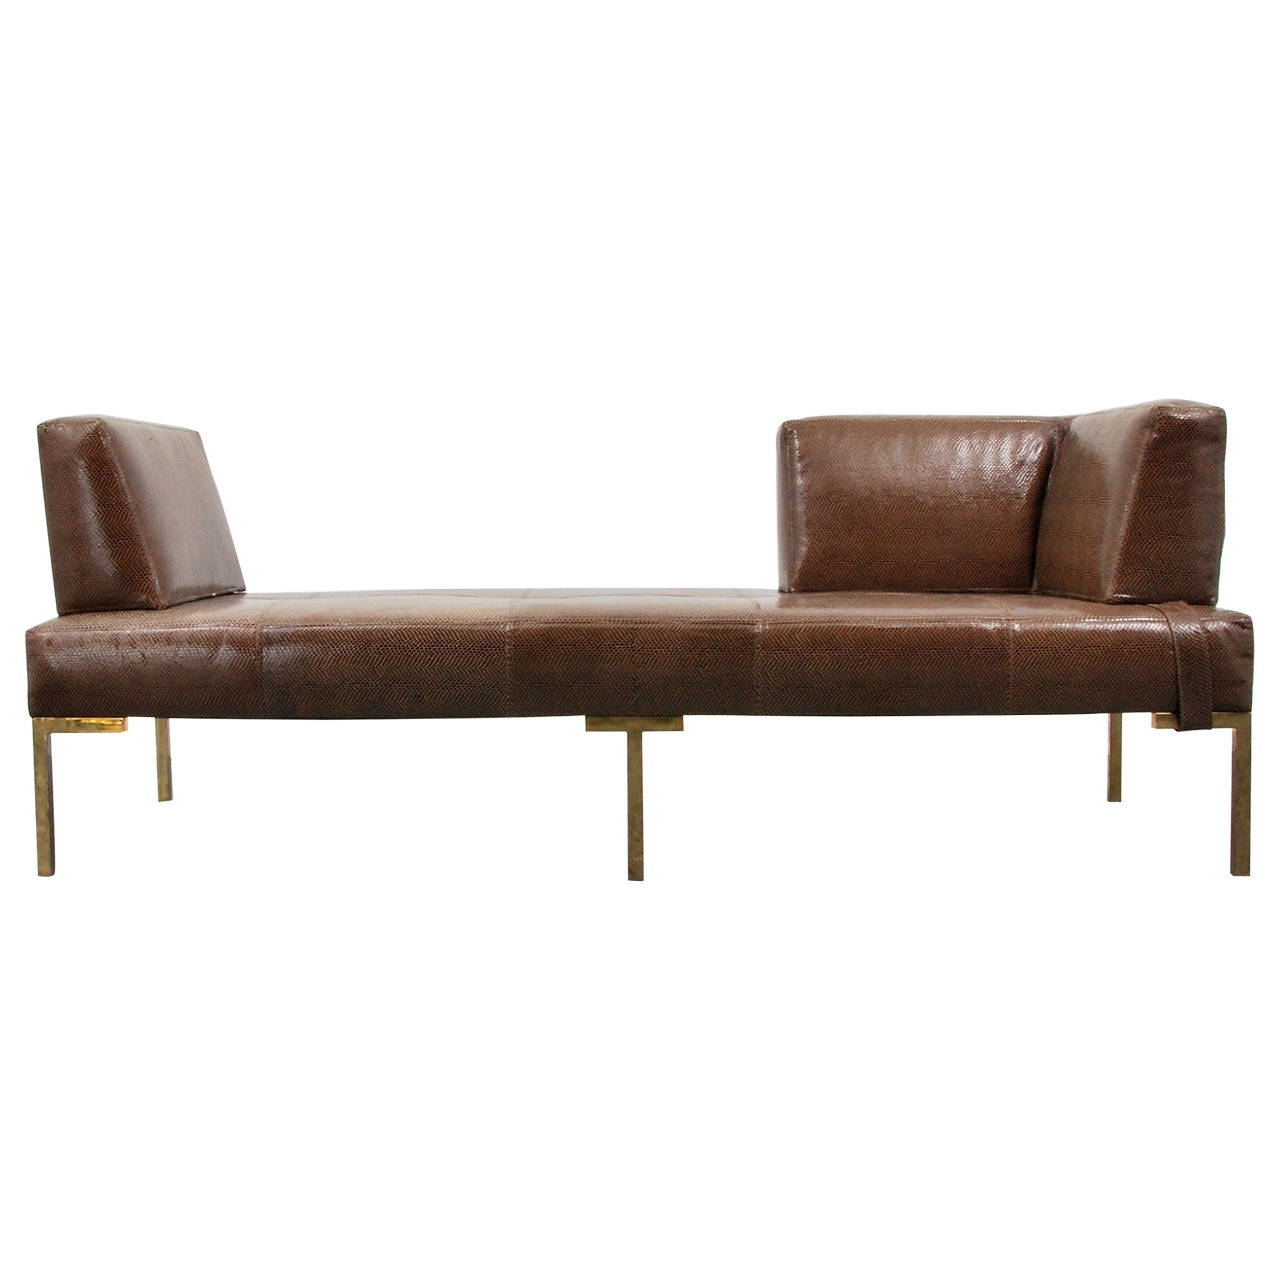 Daybed Chaises Within Well Liked Luigi Gentile Leather Daybeds Or Chaise Lounges, Two Available (View 3 of 15)